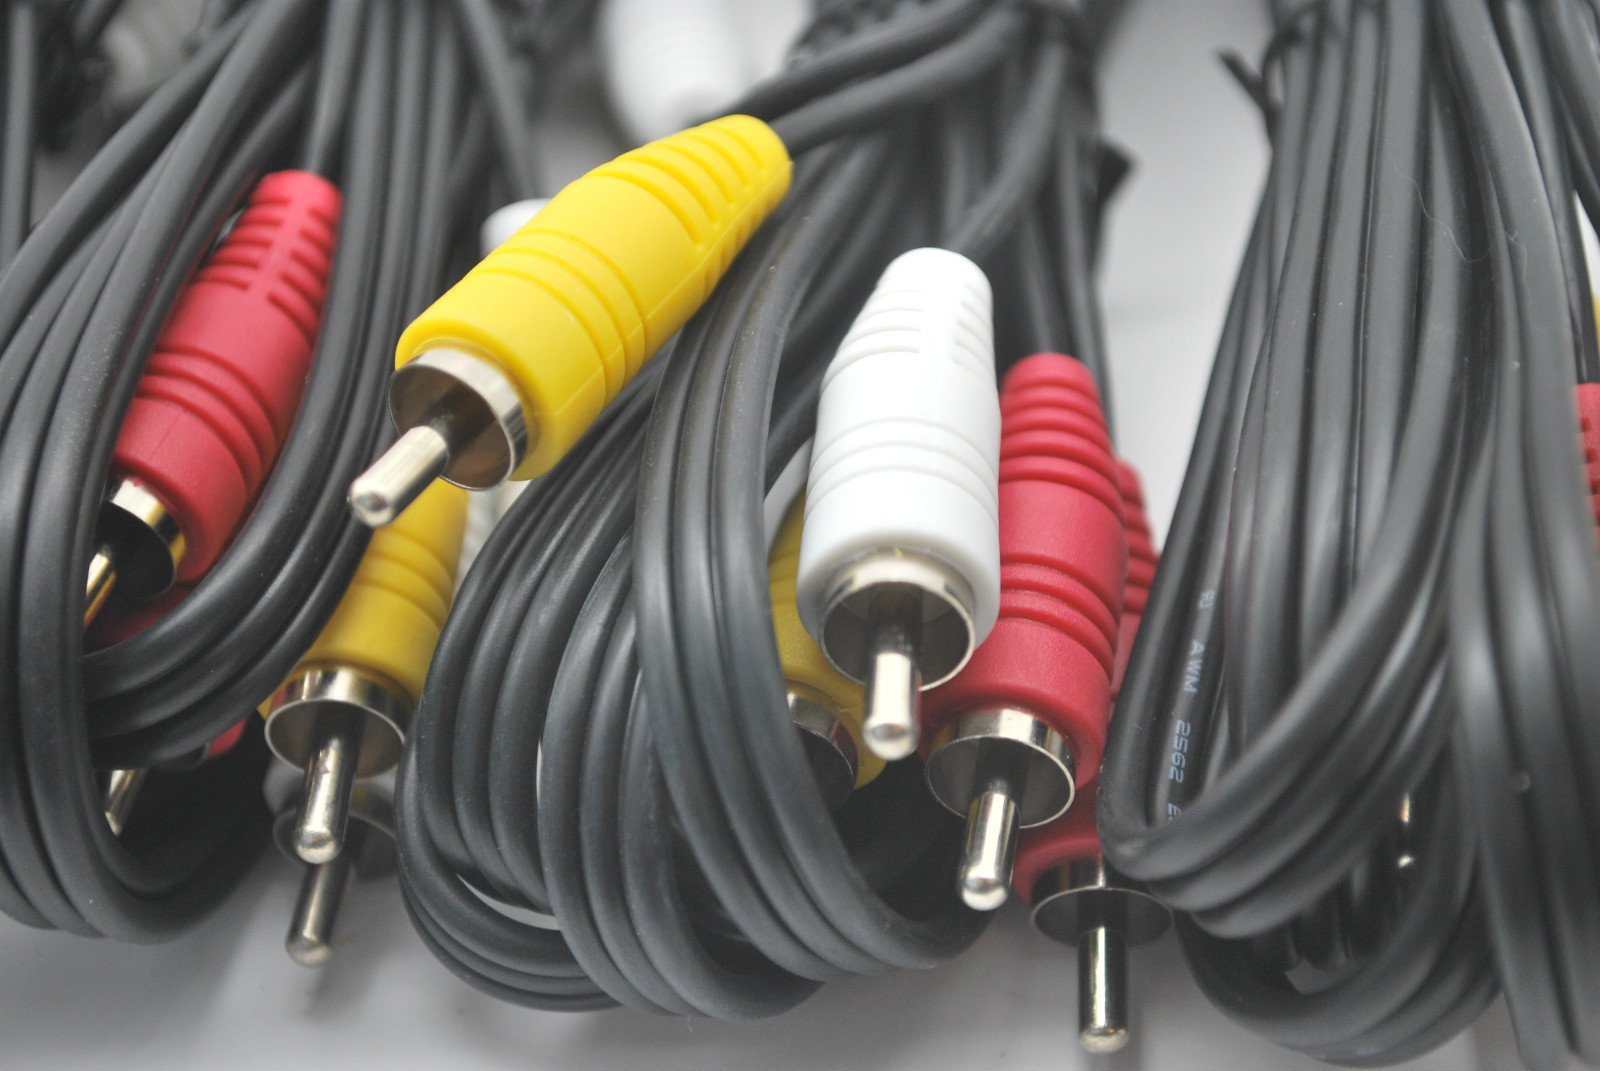 LOT OF 10 NEW 6 Ft RCA AUDIO/VIDEO COMPOSITE CABLES DVD/VCR/SAT YELLOW RED & WHITE CONNECTORS by DIRECTV (Image #2)